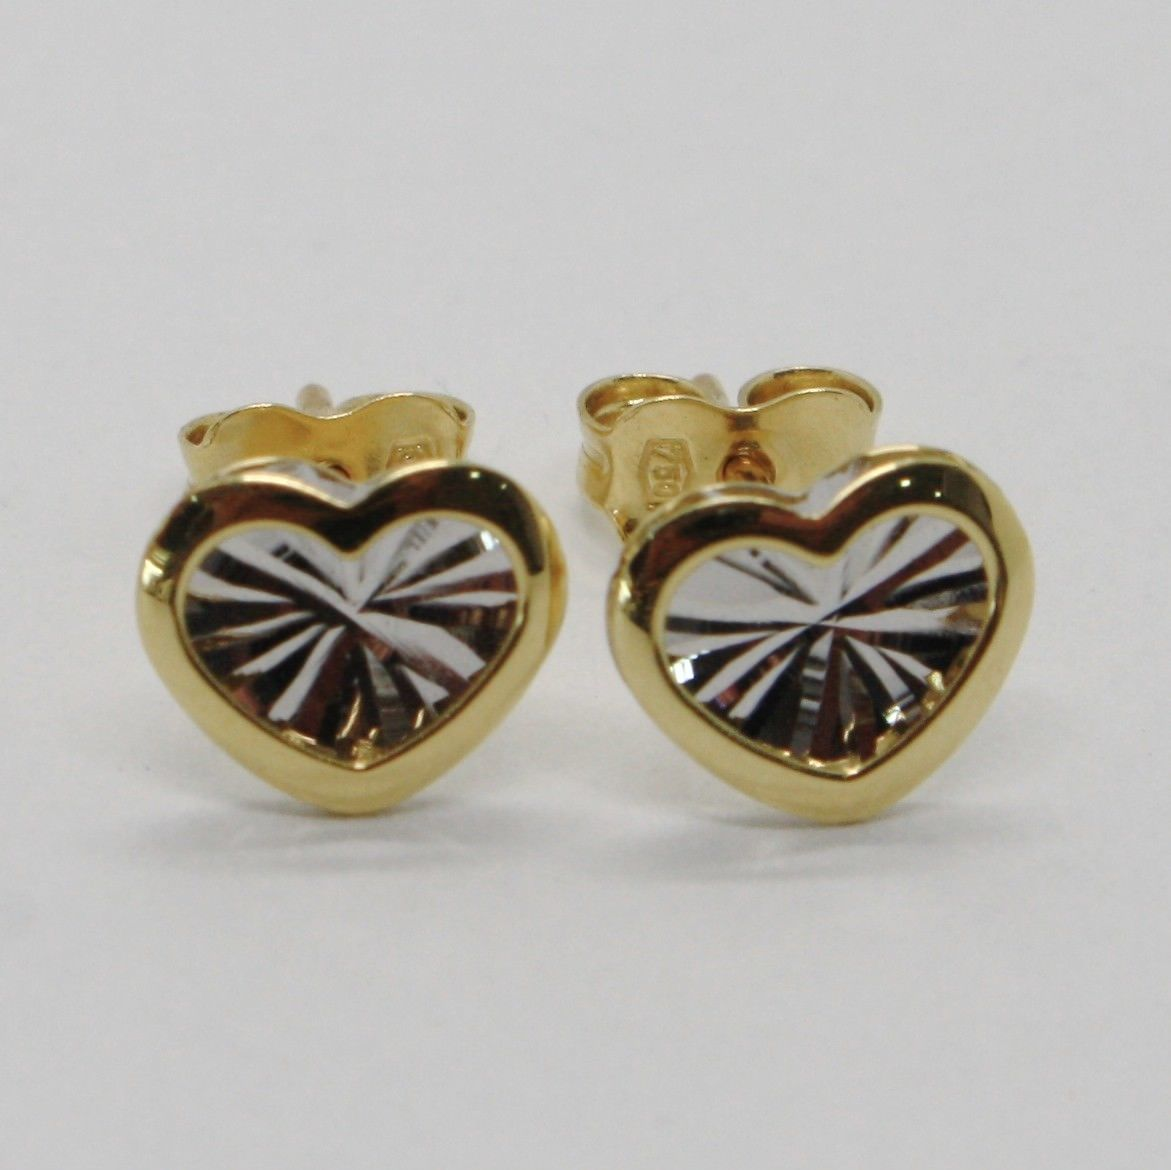 18K WHITE YELLOW GOLD HEART EARRINGS FINELY WORKED, DOUBLE RAYS STAR, ITALY MADE